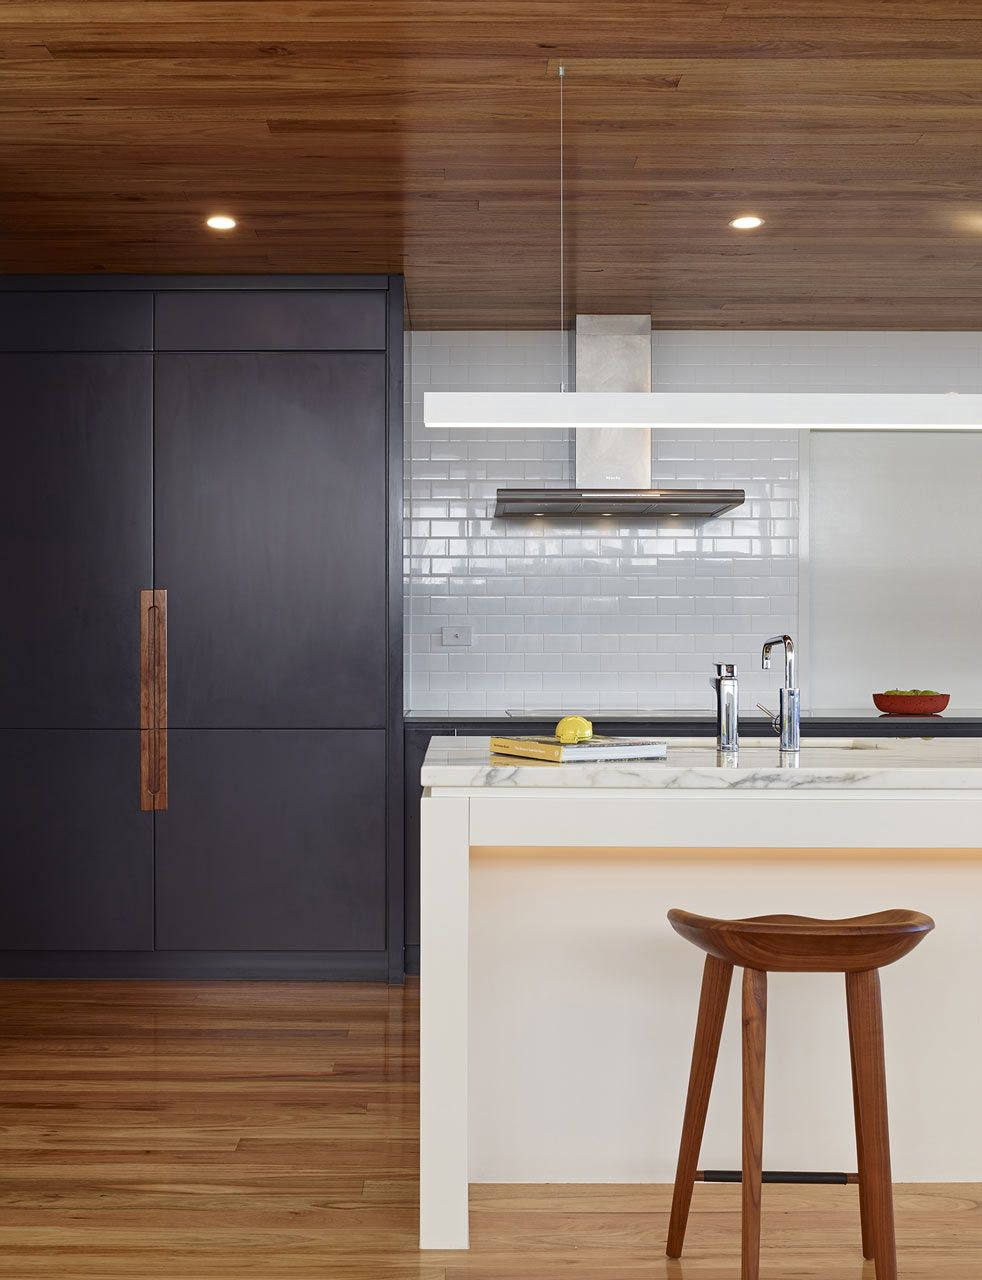 Designed by kahrtel the Nundah House appears